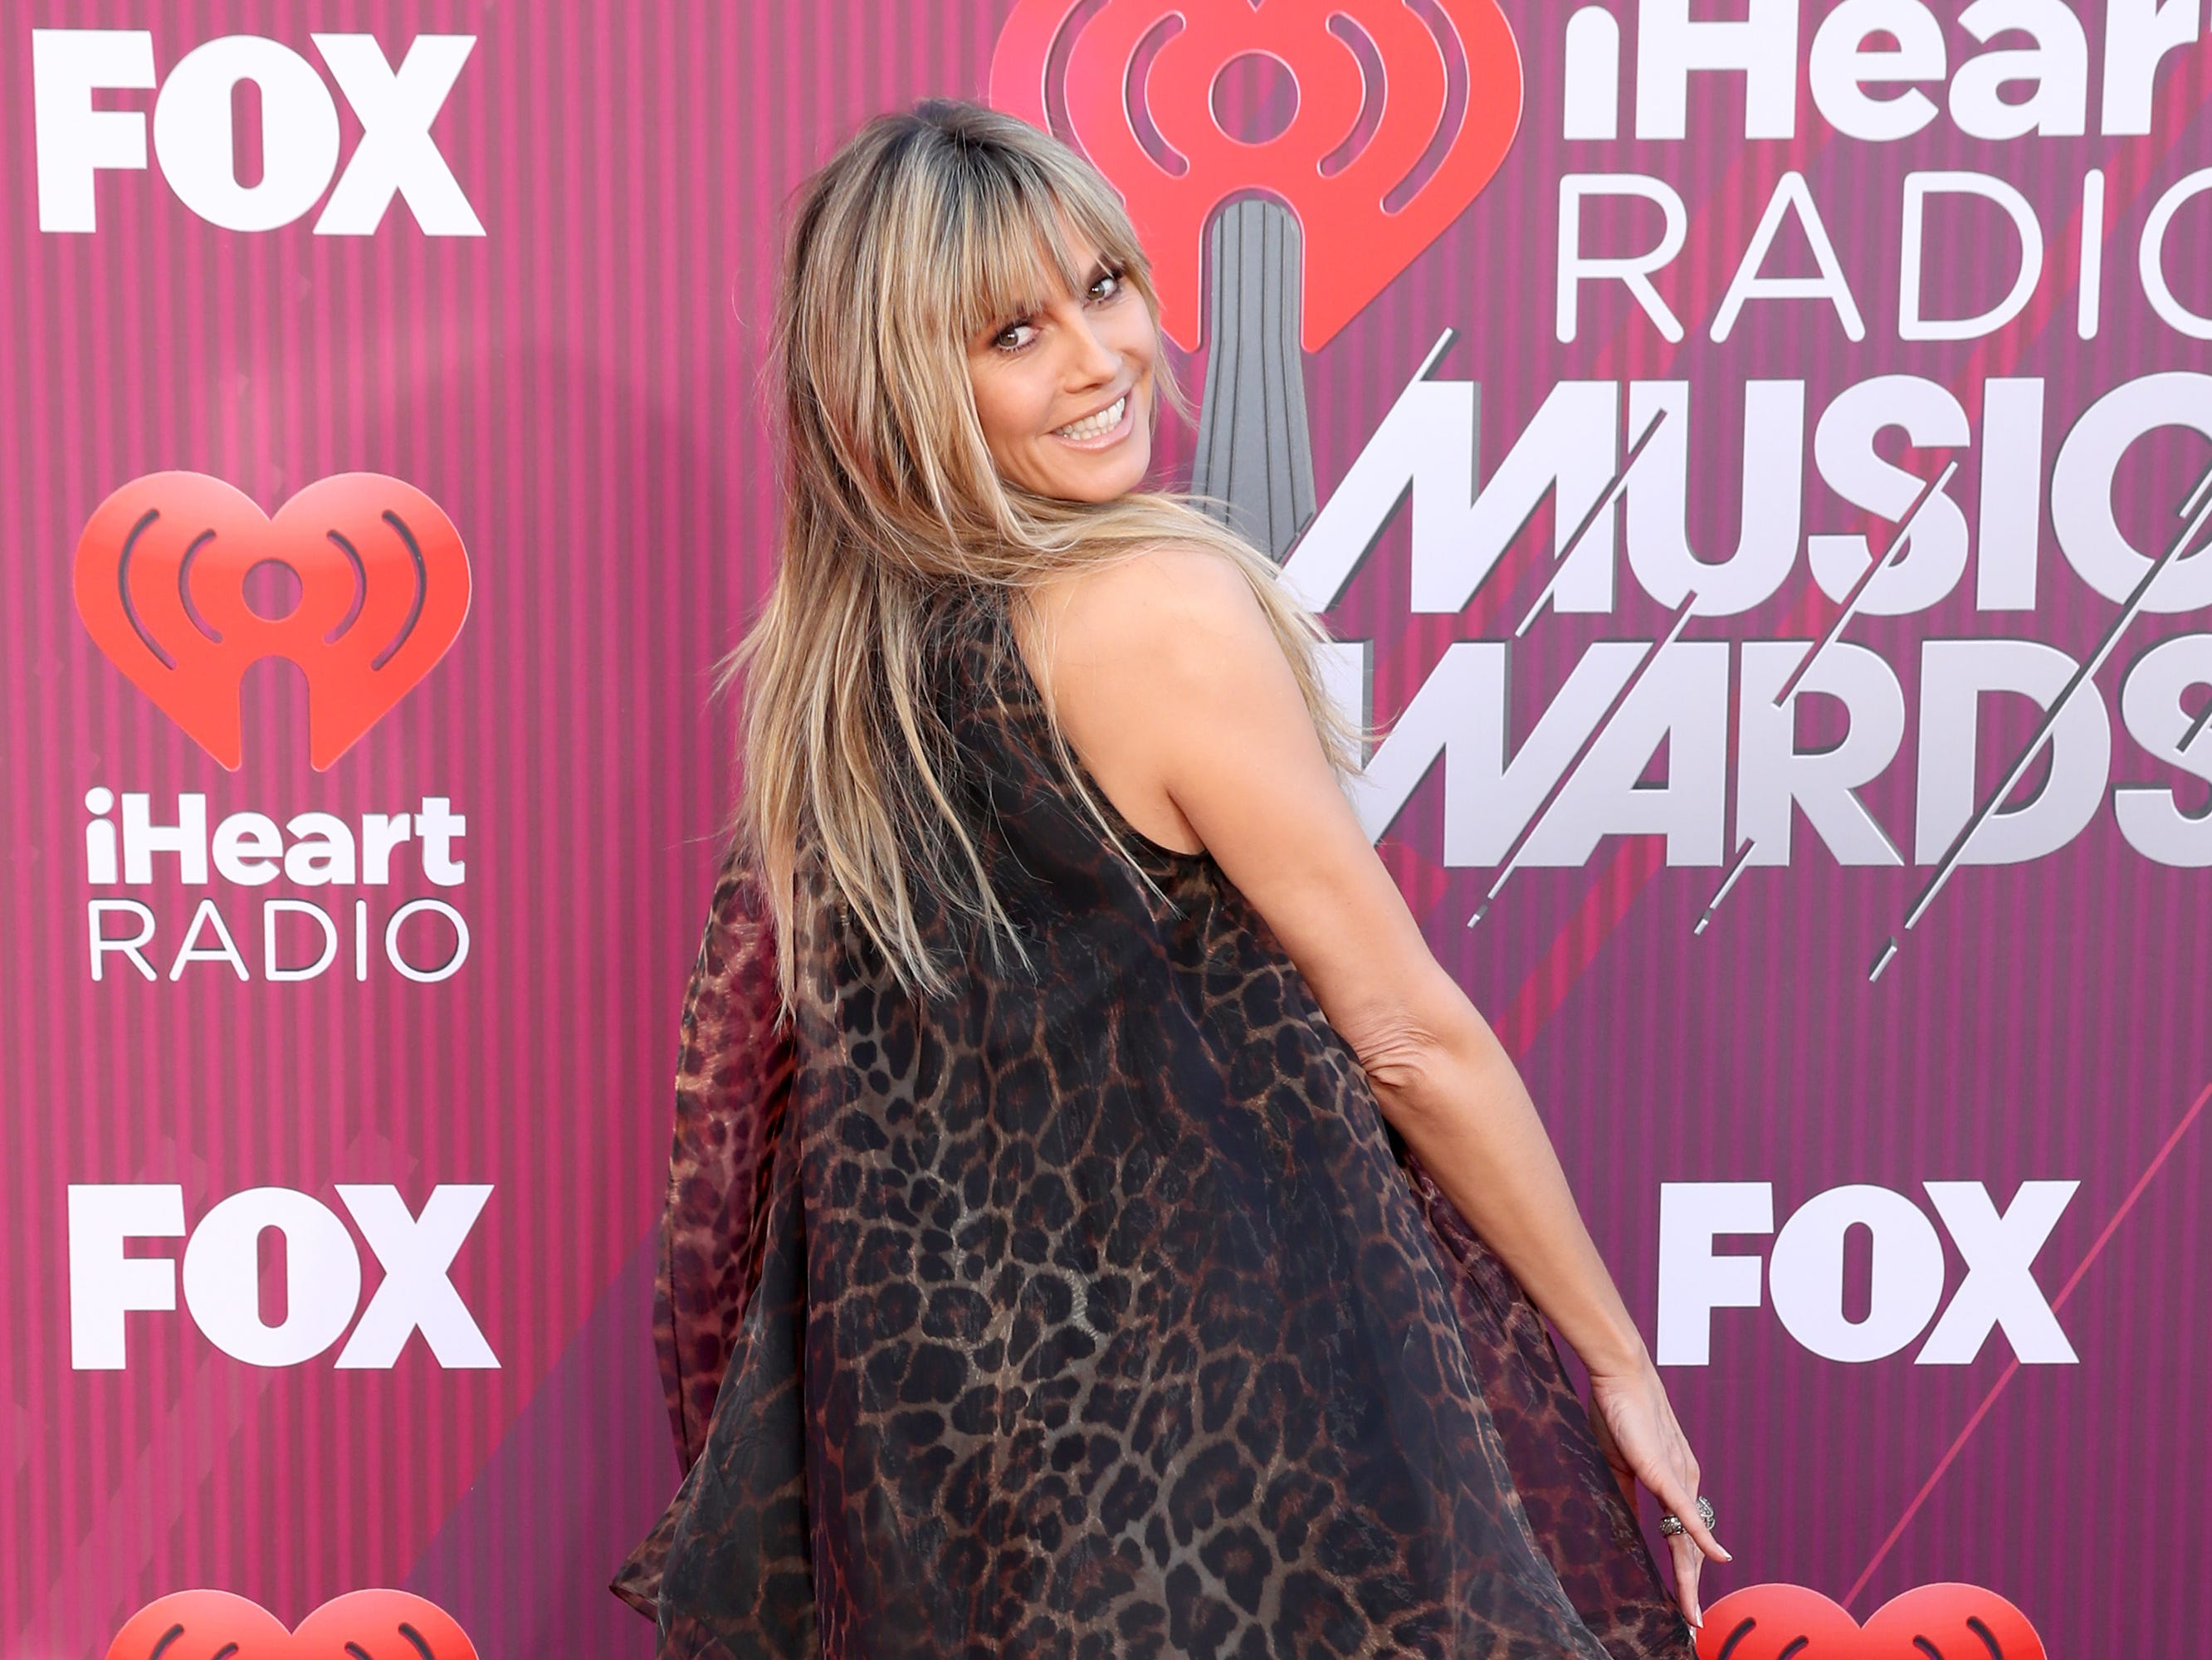 Heidi Klum arrives at the iHeartRadio Music Awards.